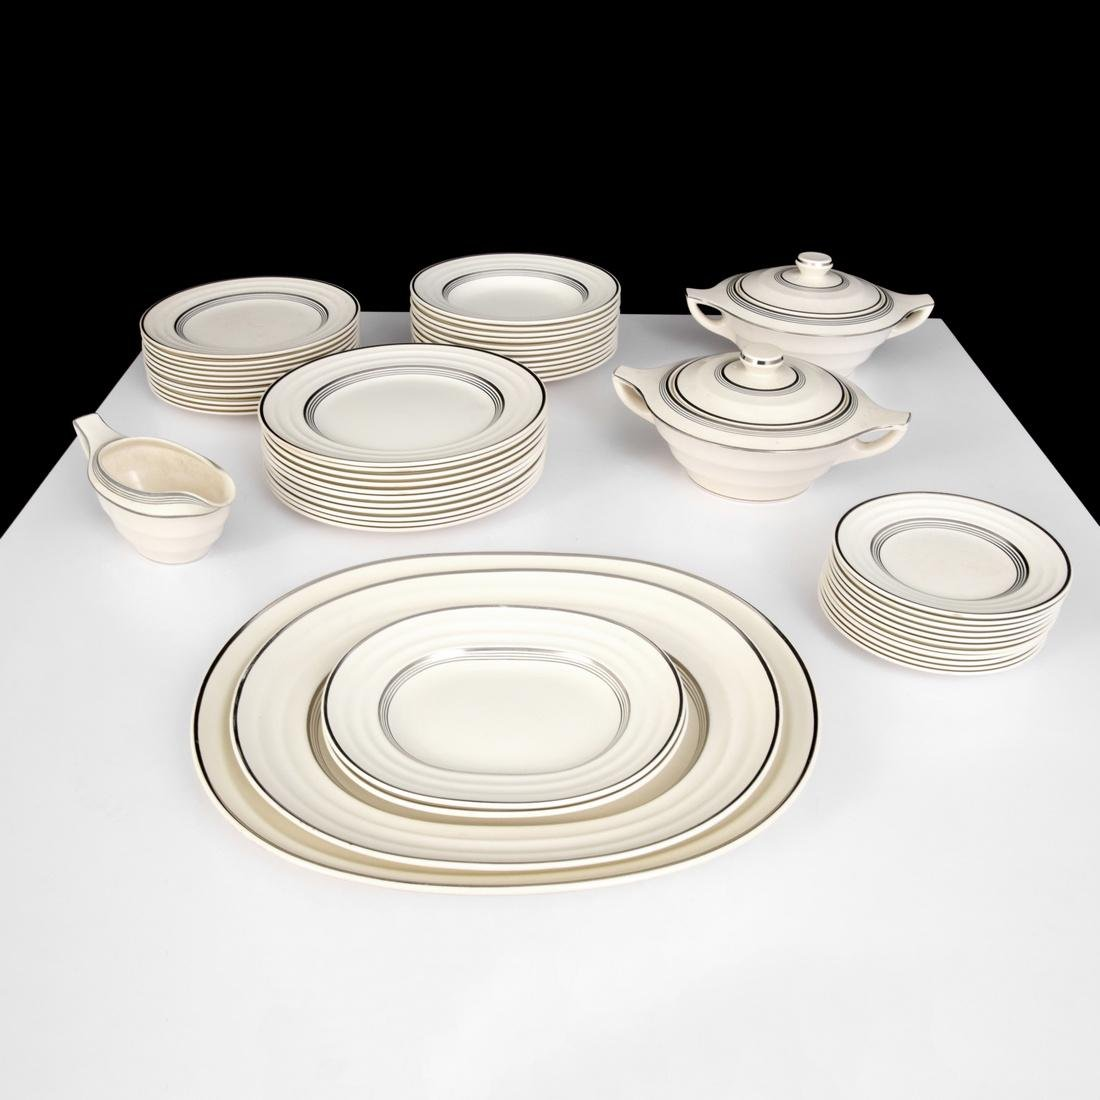 Keith Murray MOONSTONE Dinnerware Set, 51 Pieces